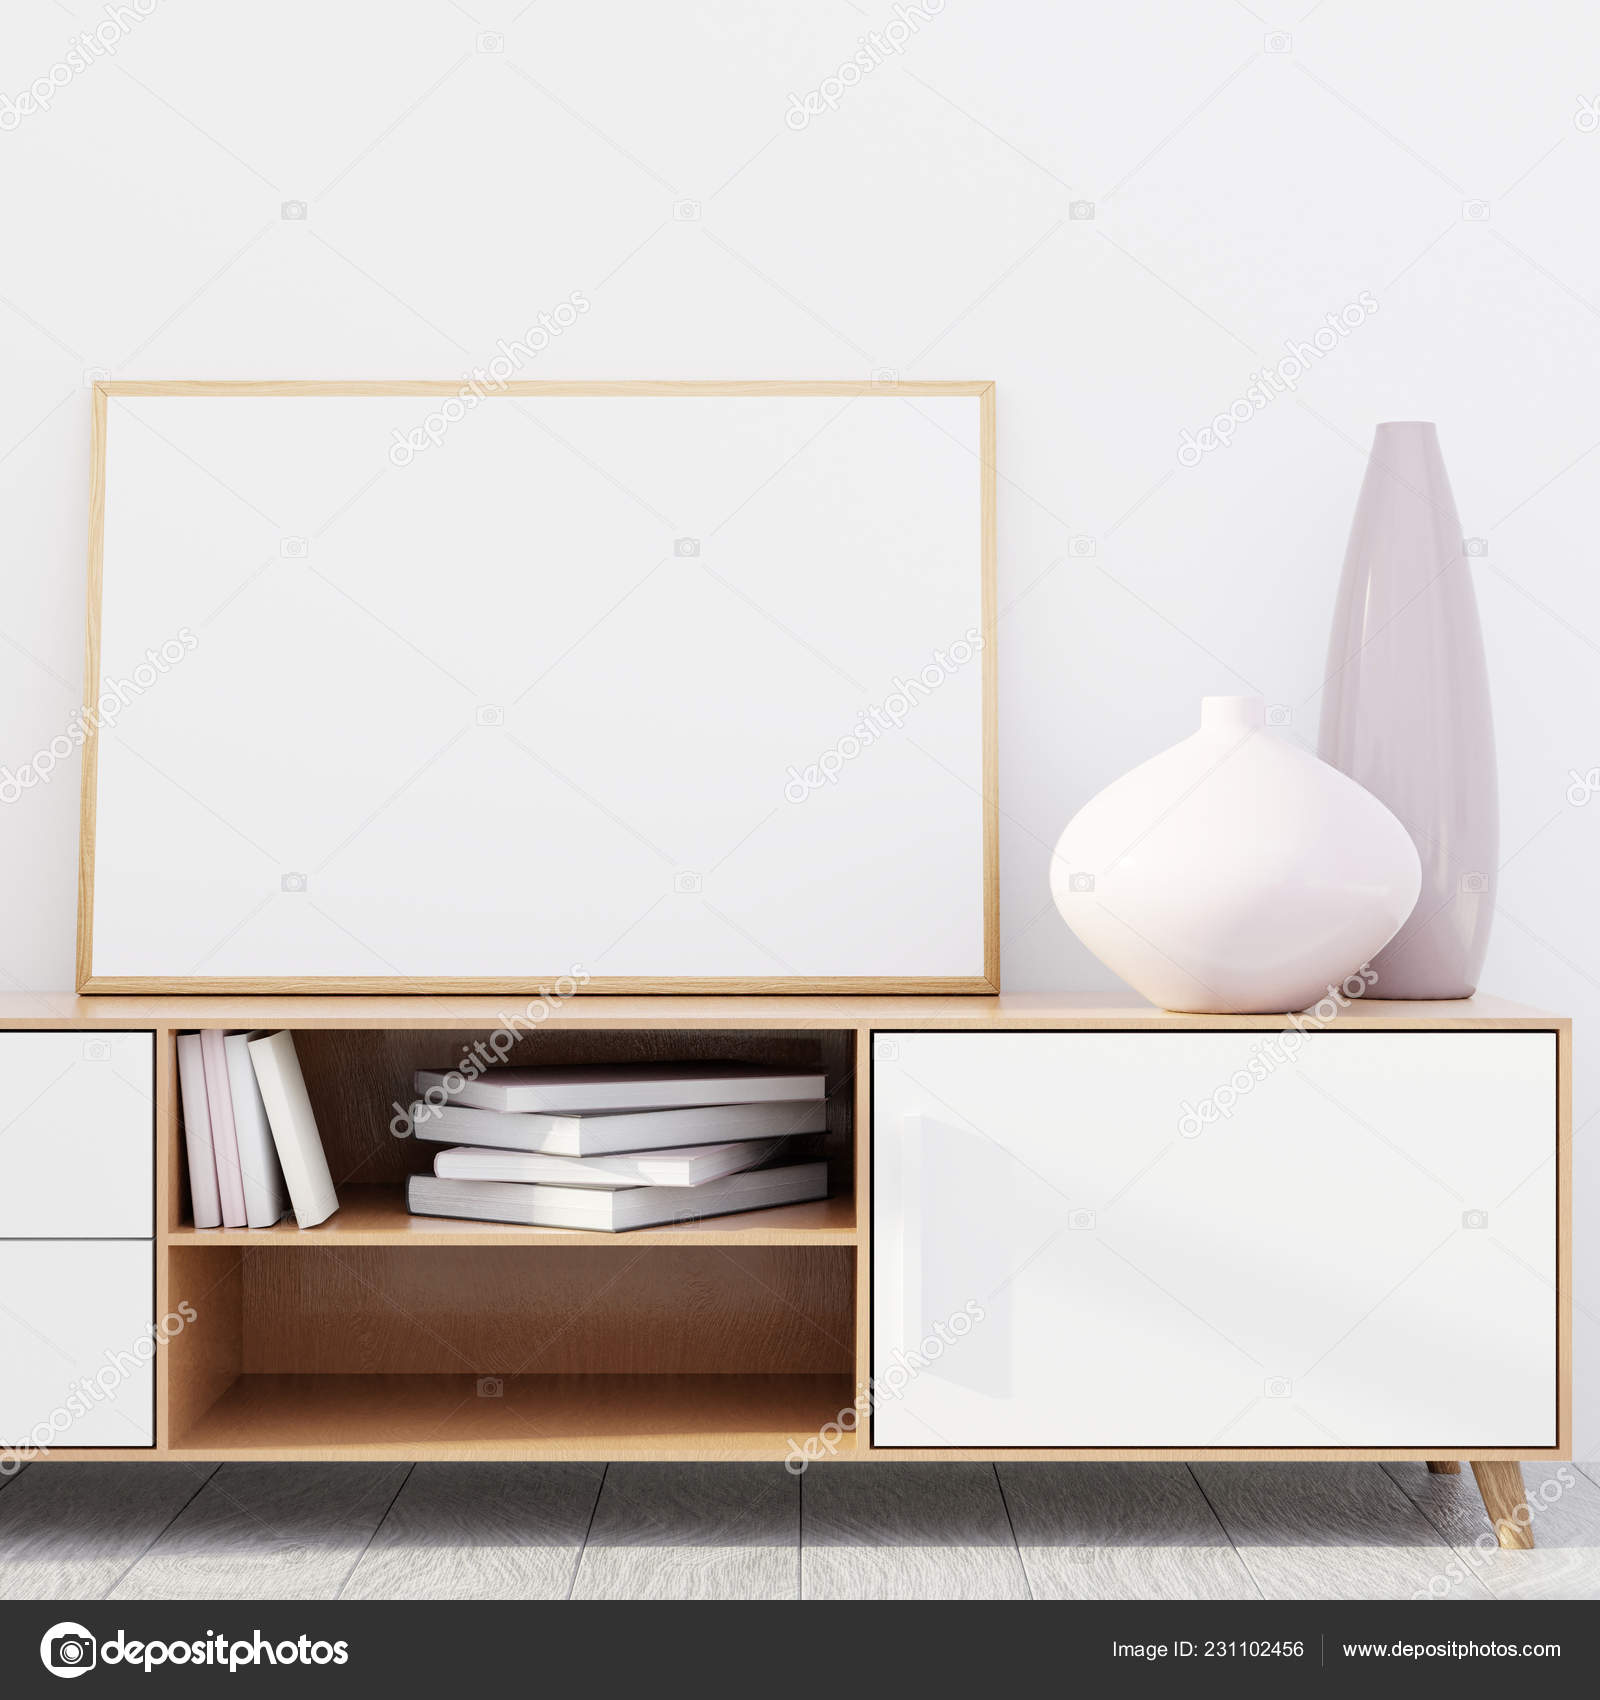 Modern Living Room Interior With A Wooden Dresser And A Horizontal